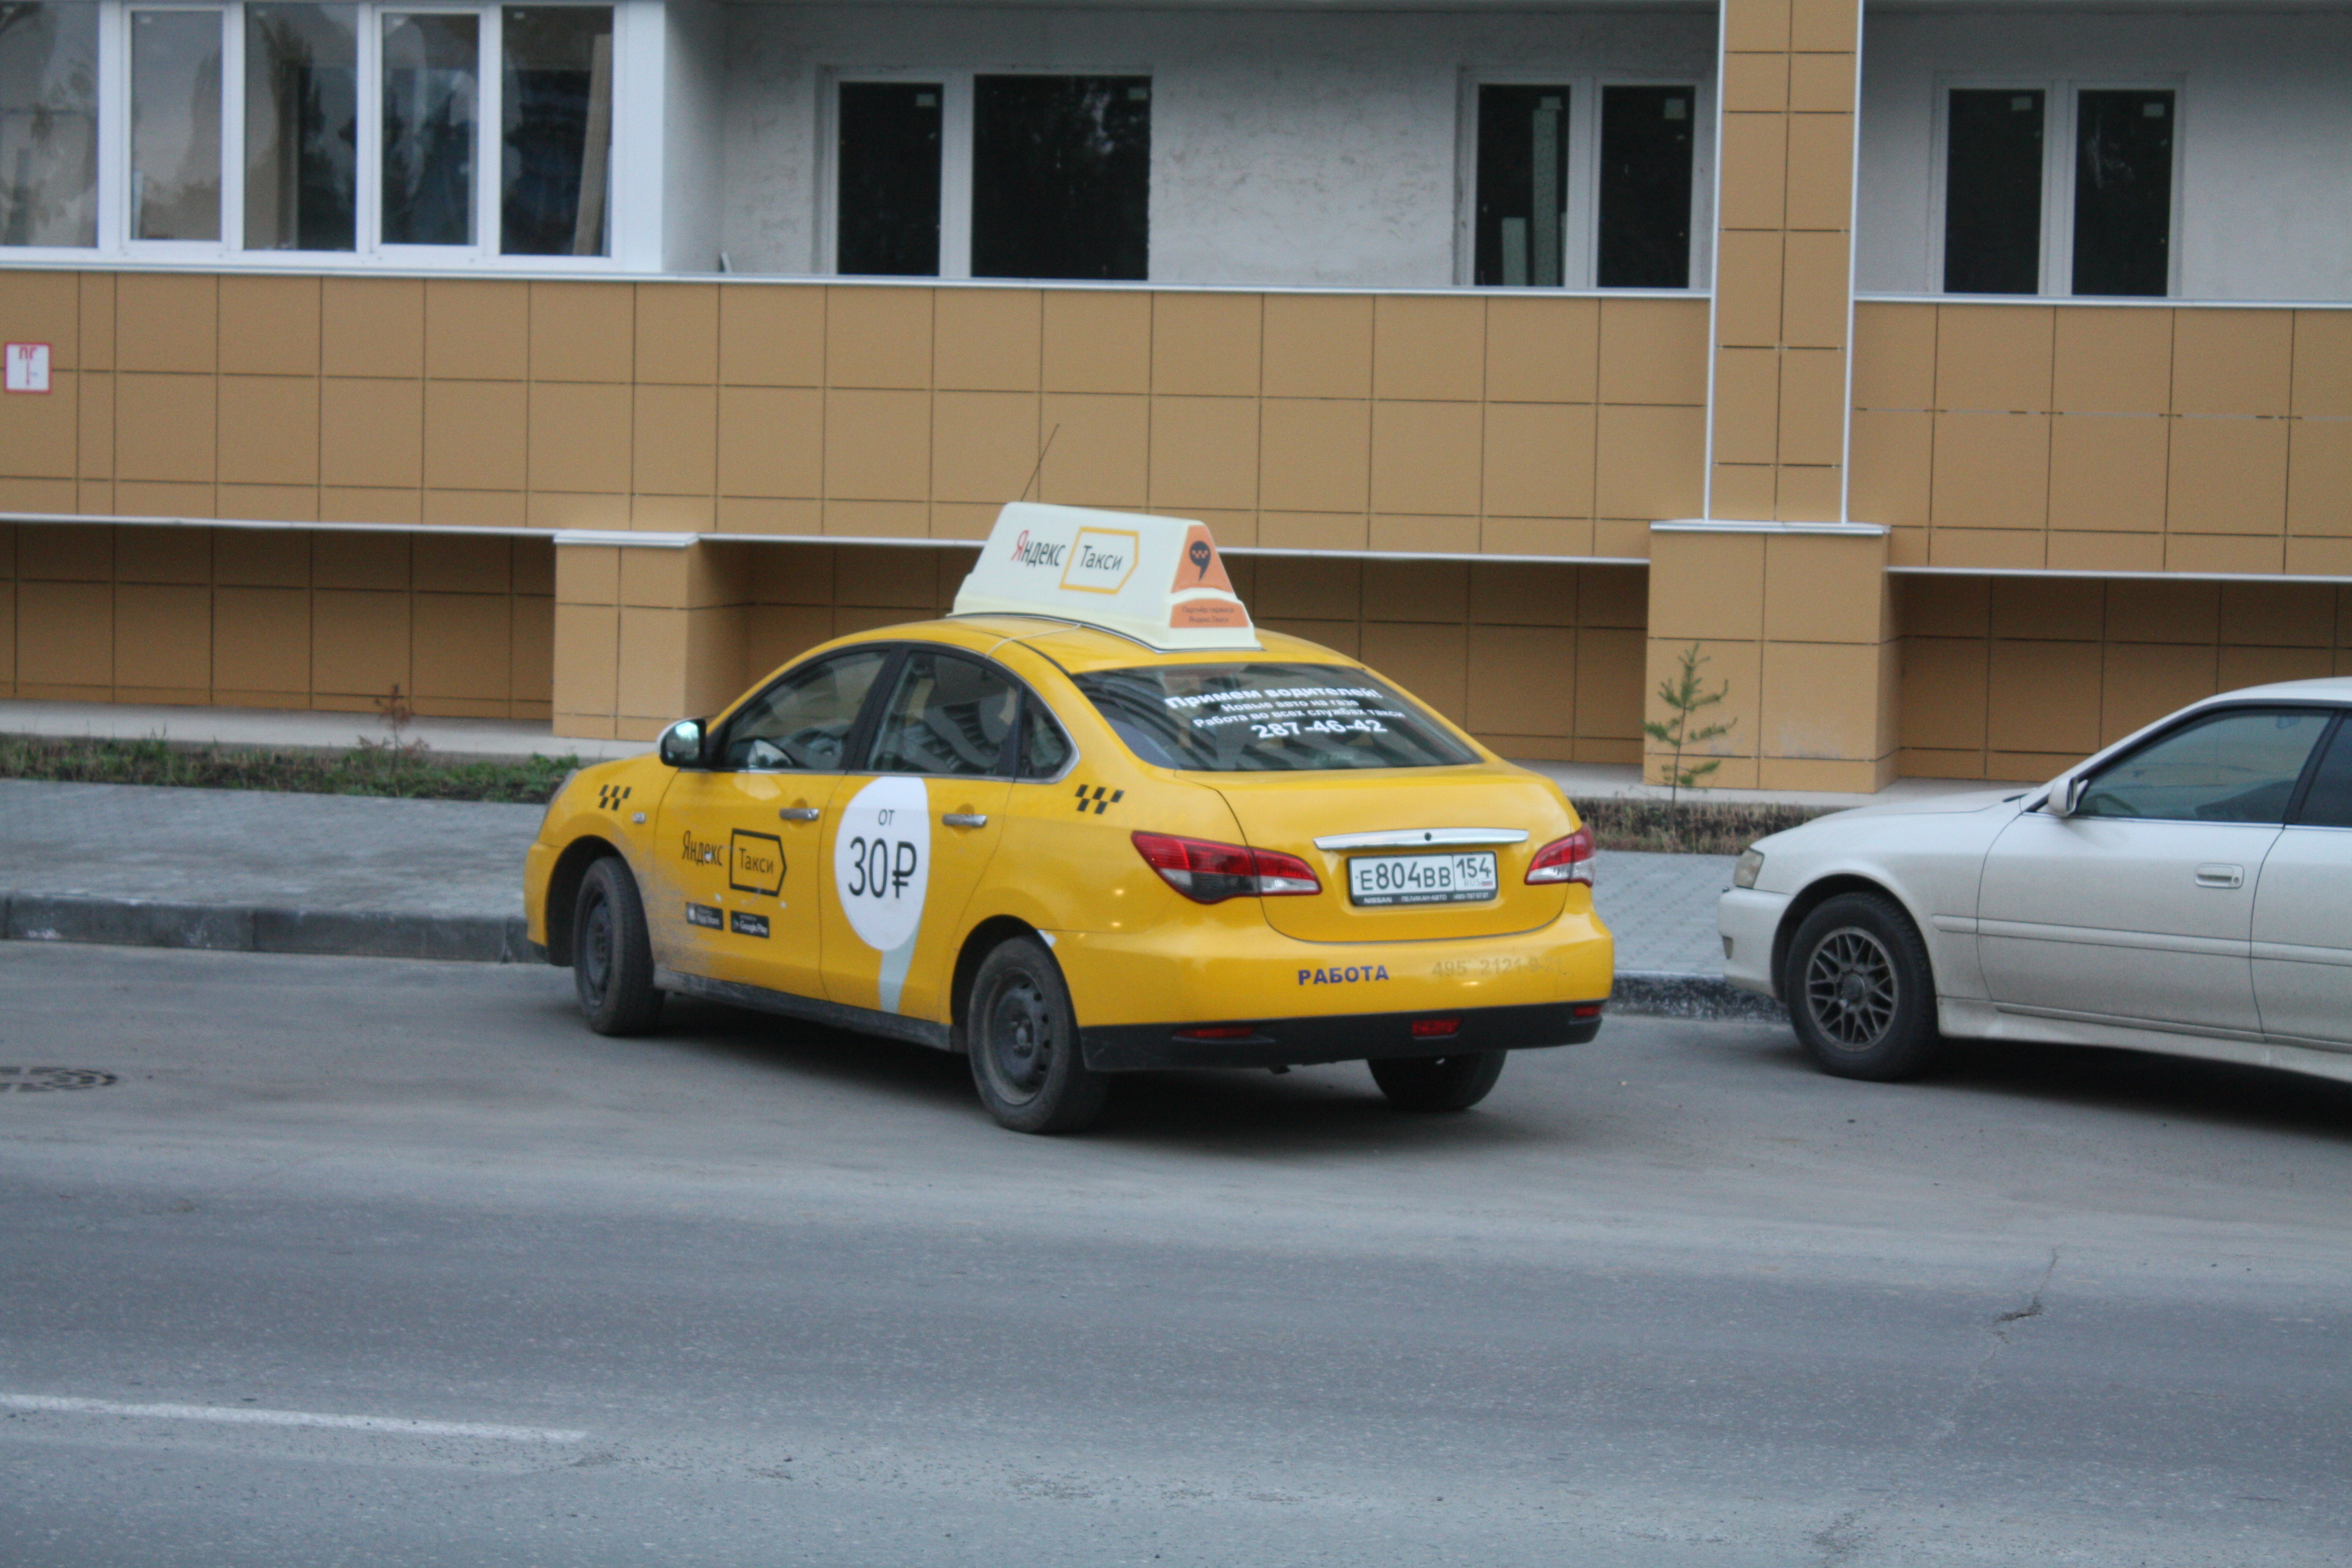 File:Yandex Taxi 2 jpg - Wikimedia Commons